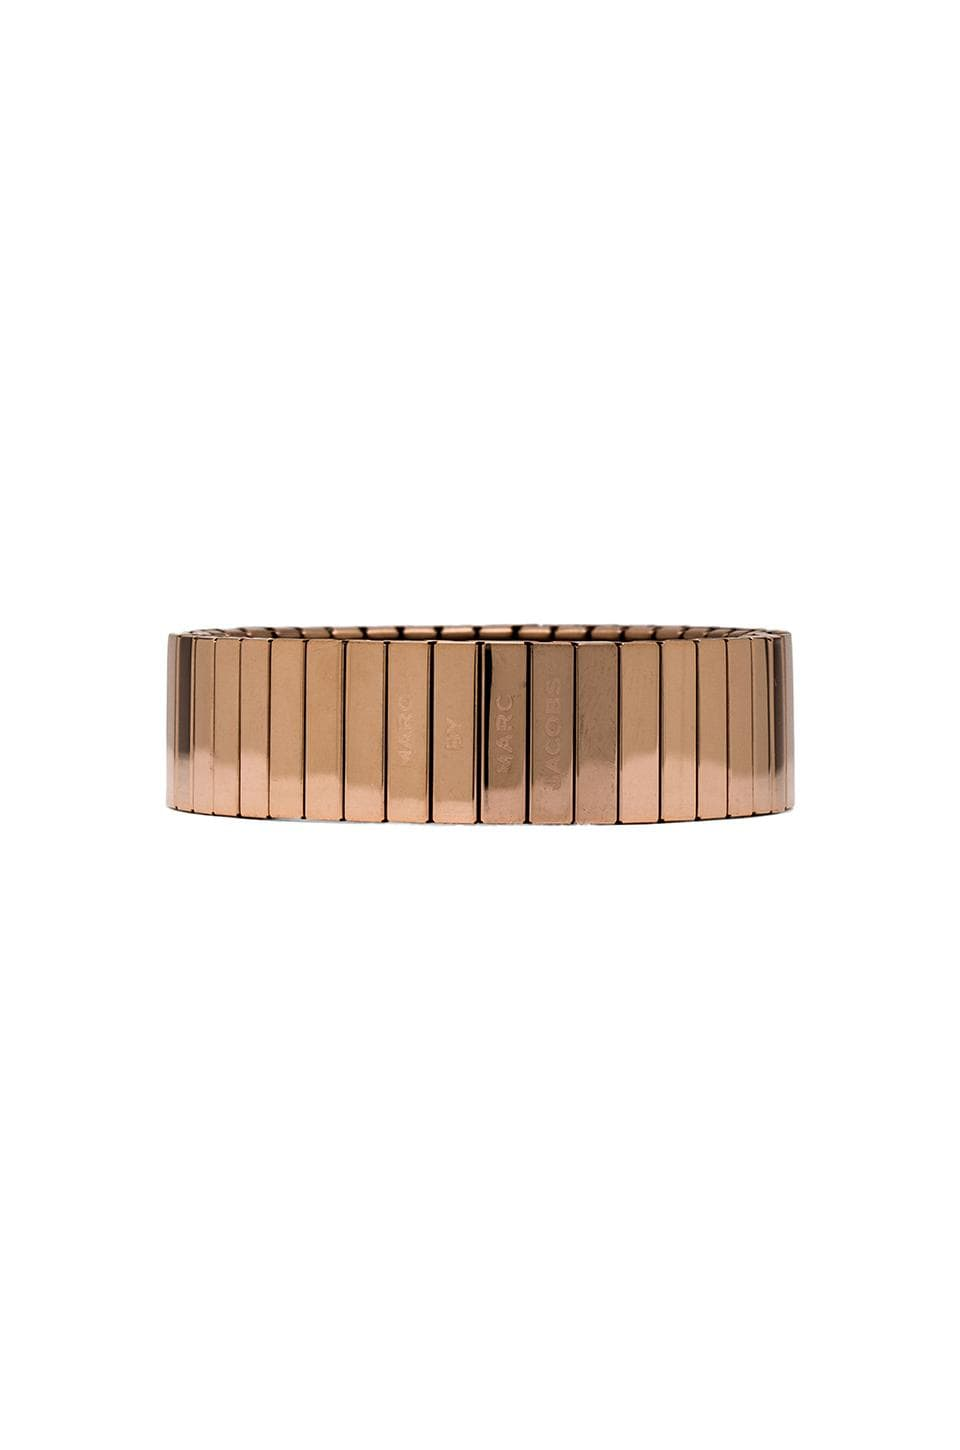 Marc by Marc Jacobs Grab & Go Watch Bandz Bracelet in Rose Gold